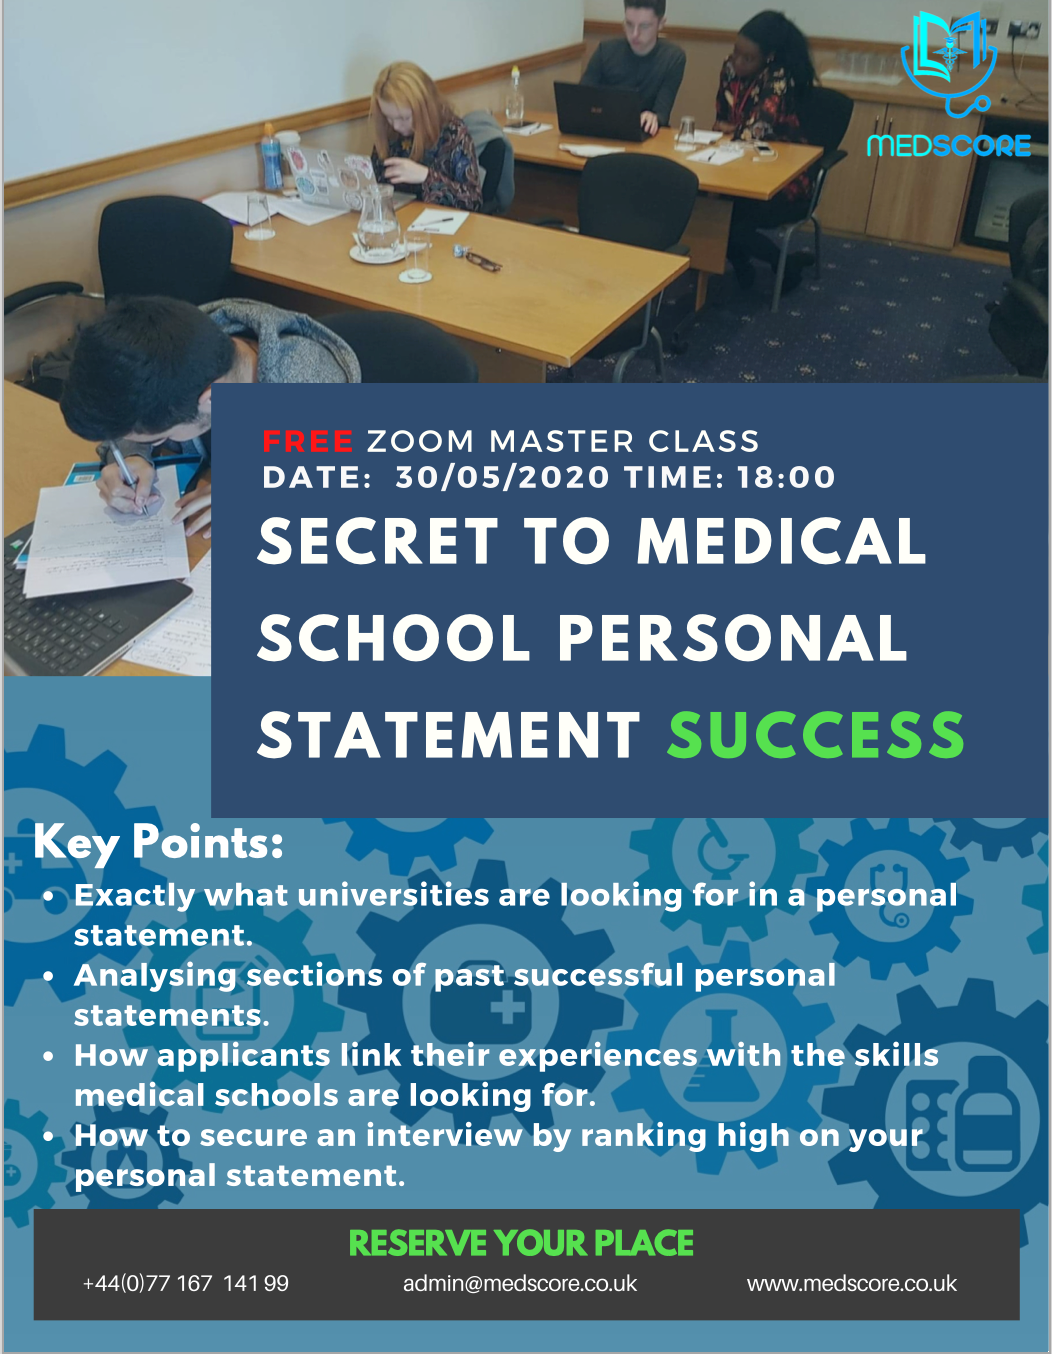 SECRETE TO PERSONAL STATEMENT SUCCESS MASTER CLASS